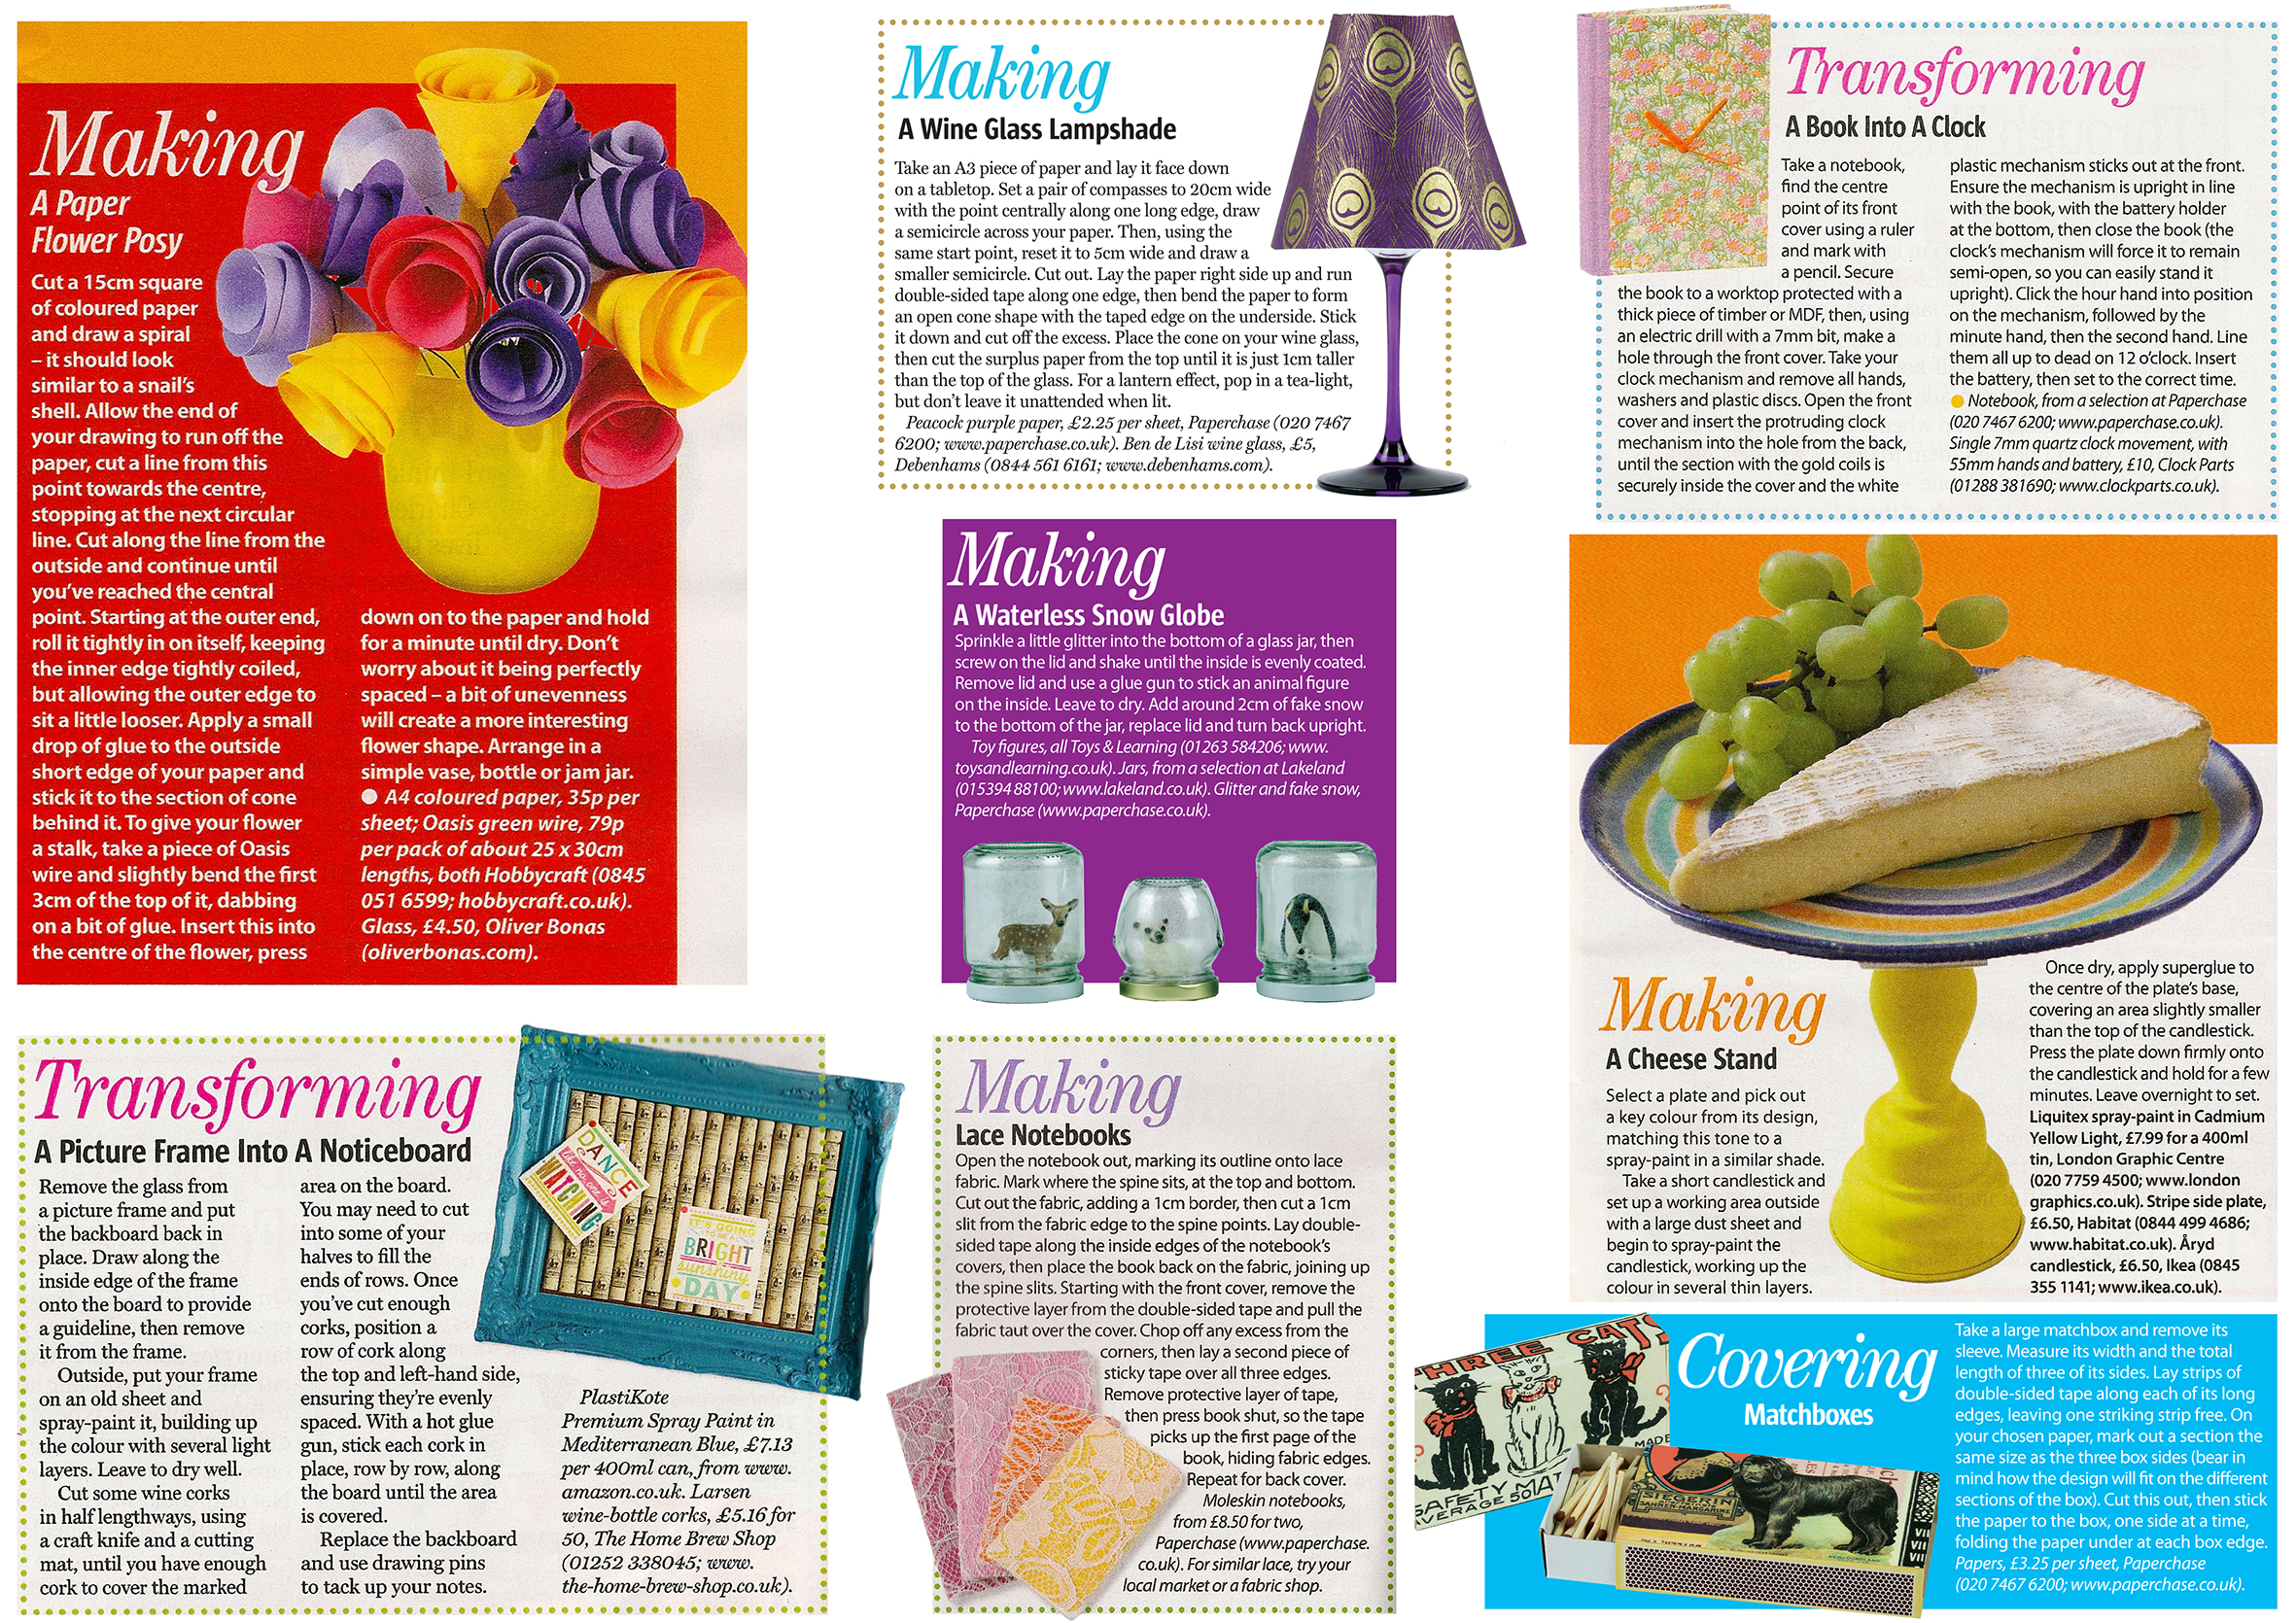 7. Woman's Weekly magazine Mini Make Projects Composite by Interior Stylist Joanna Thornhill.jpg